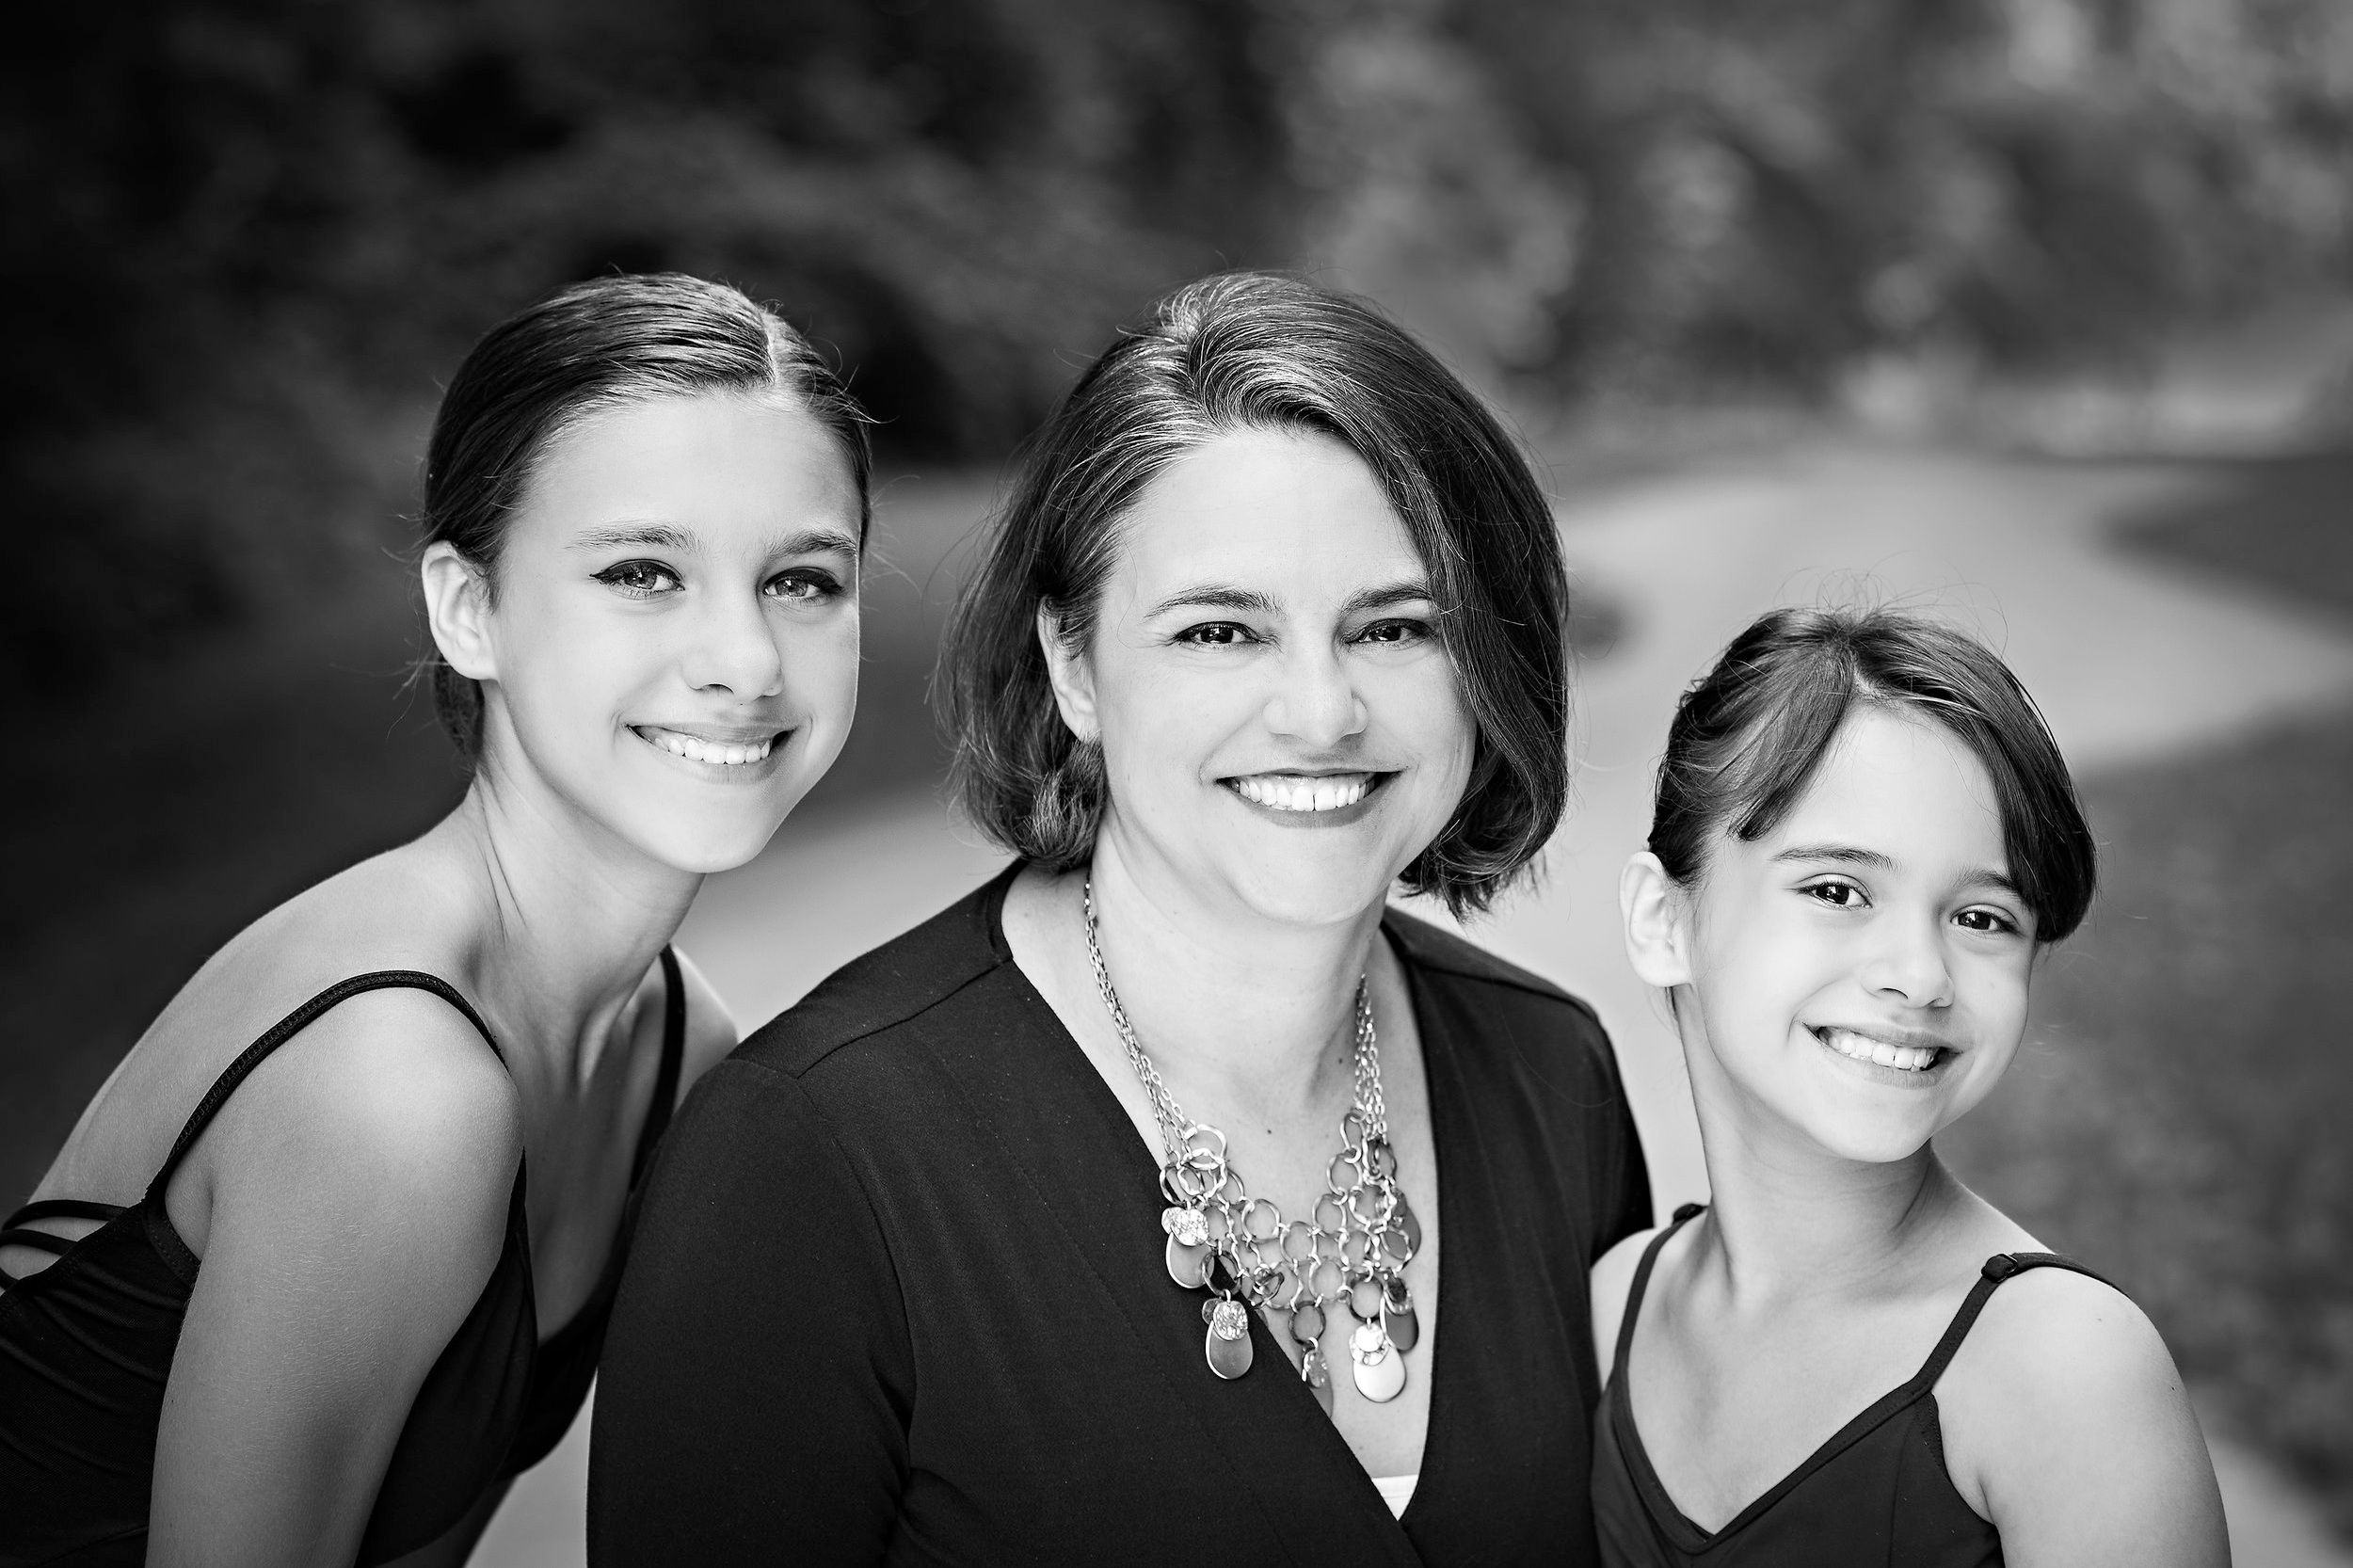 FAMILIES IN BLACK AND WHITE -